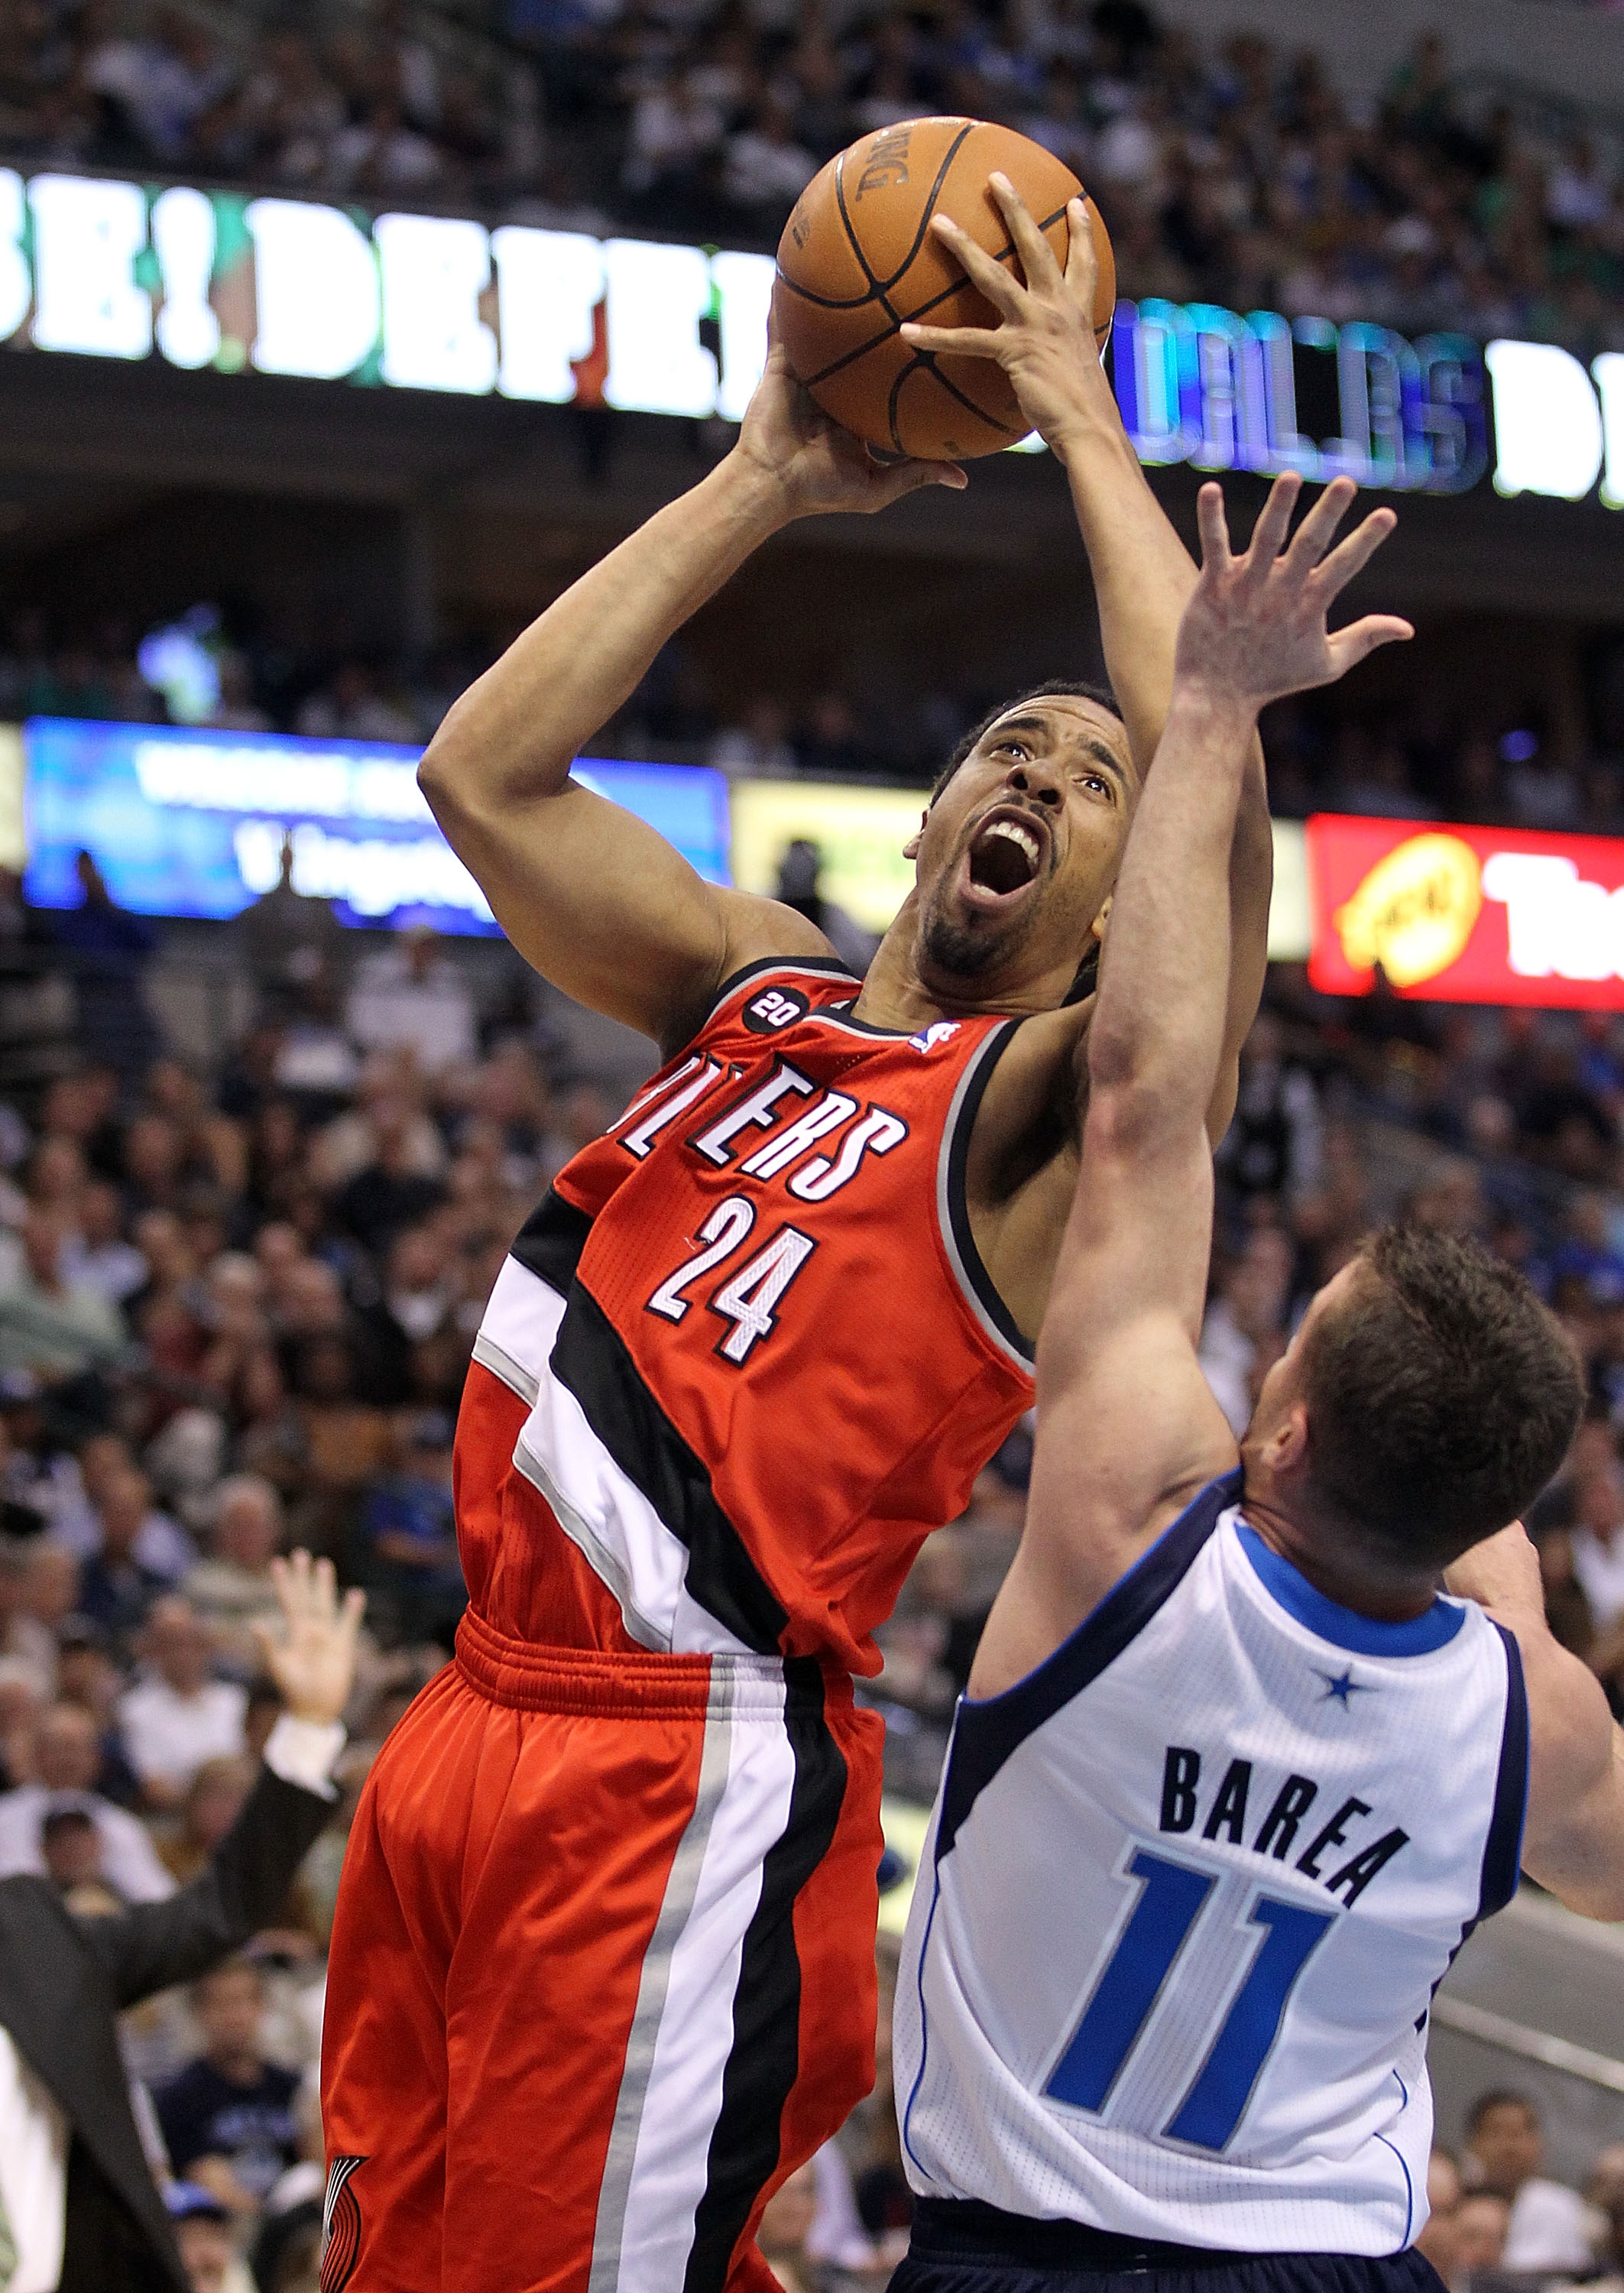 DALLAS, TX - APRIL 19:  Guard Andre Miller #24 of the Portland Trail Blazers takes a shot against Jose Juan Barea #11 of the Dallas Mavericks in Game Two of the Western Conference Quarterfinals during the 2011 NBA Playoffs on April 19, 2011 at American Ai